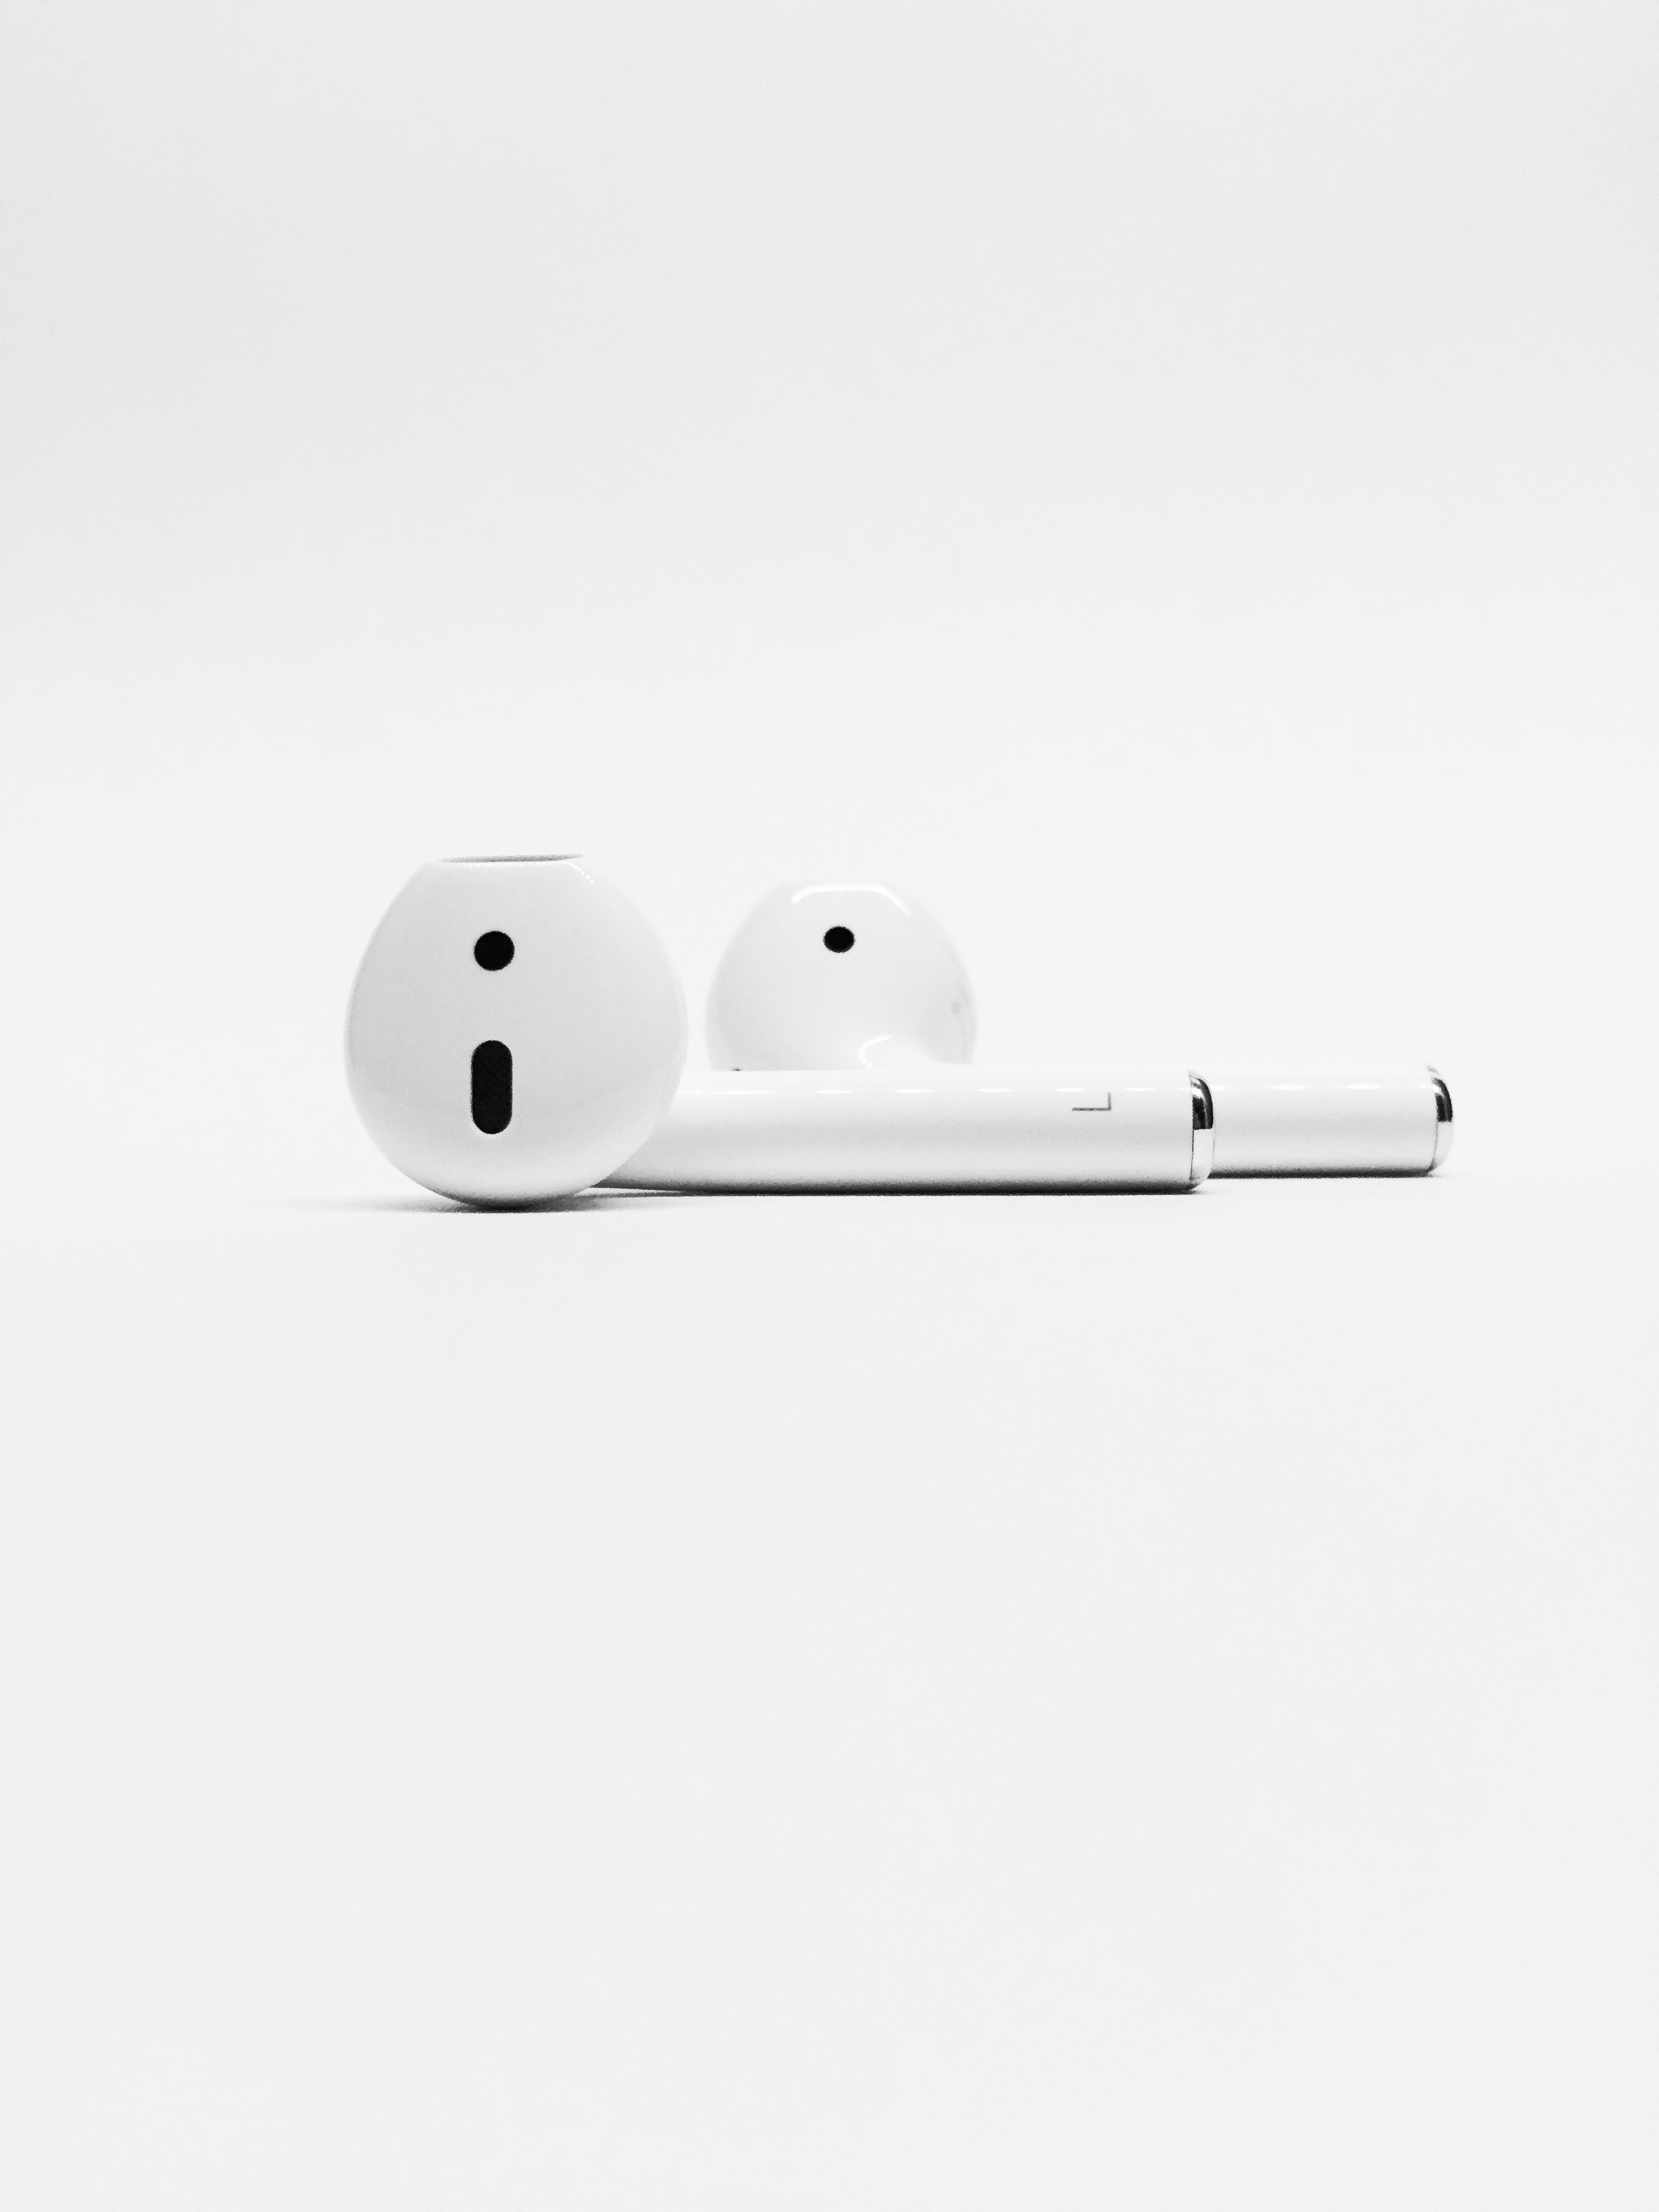 Apple AirPods Takeover Market